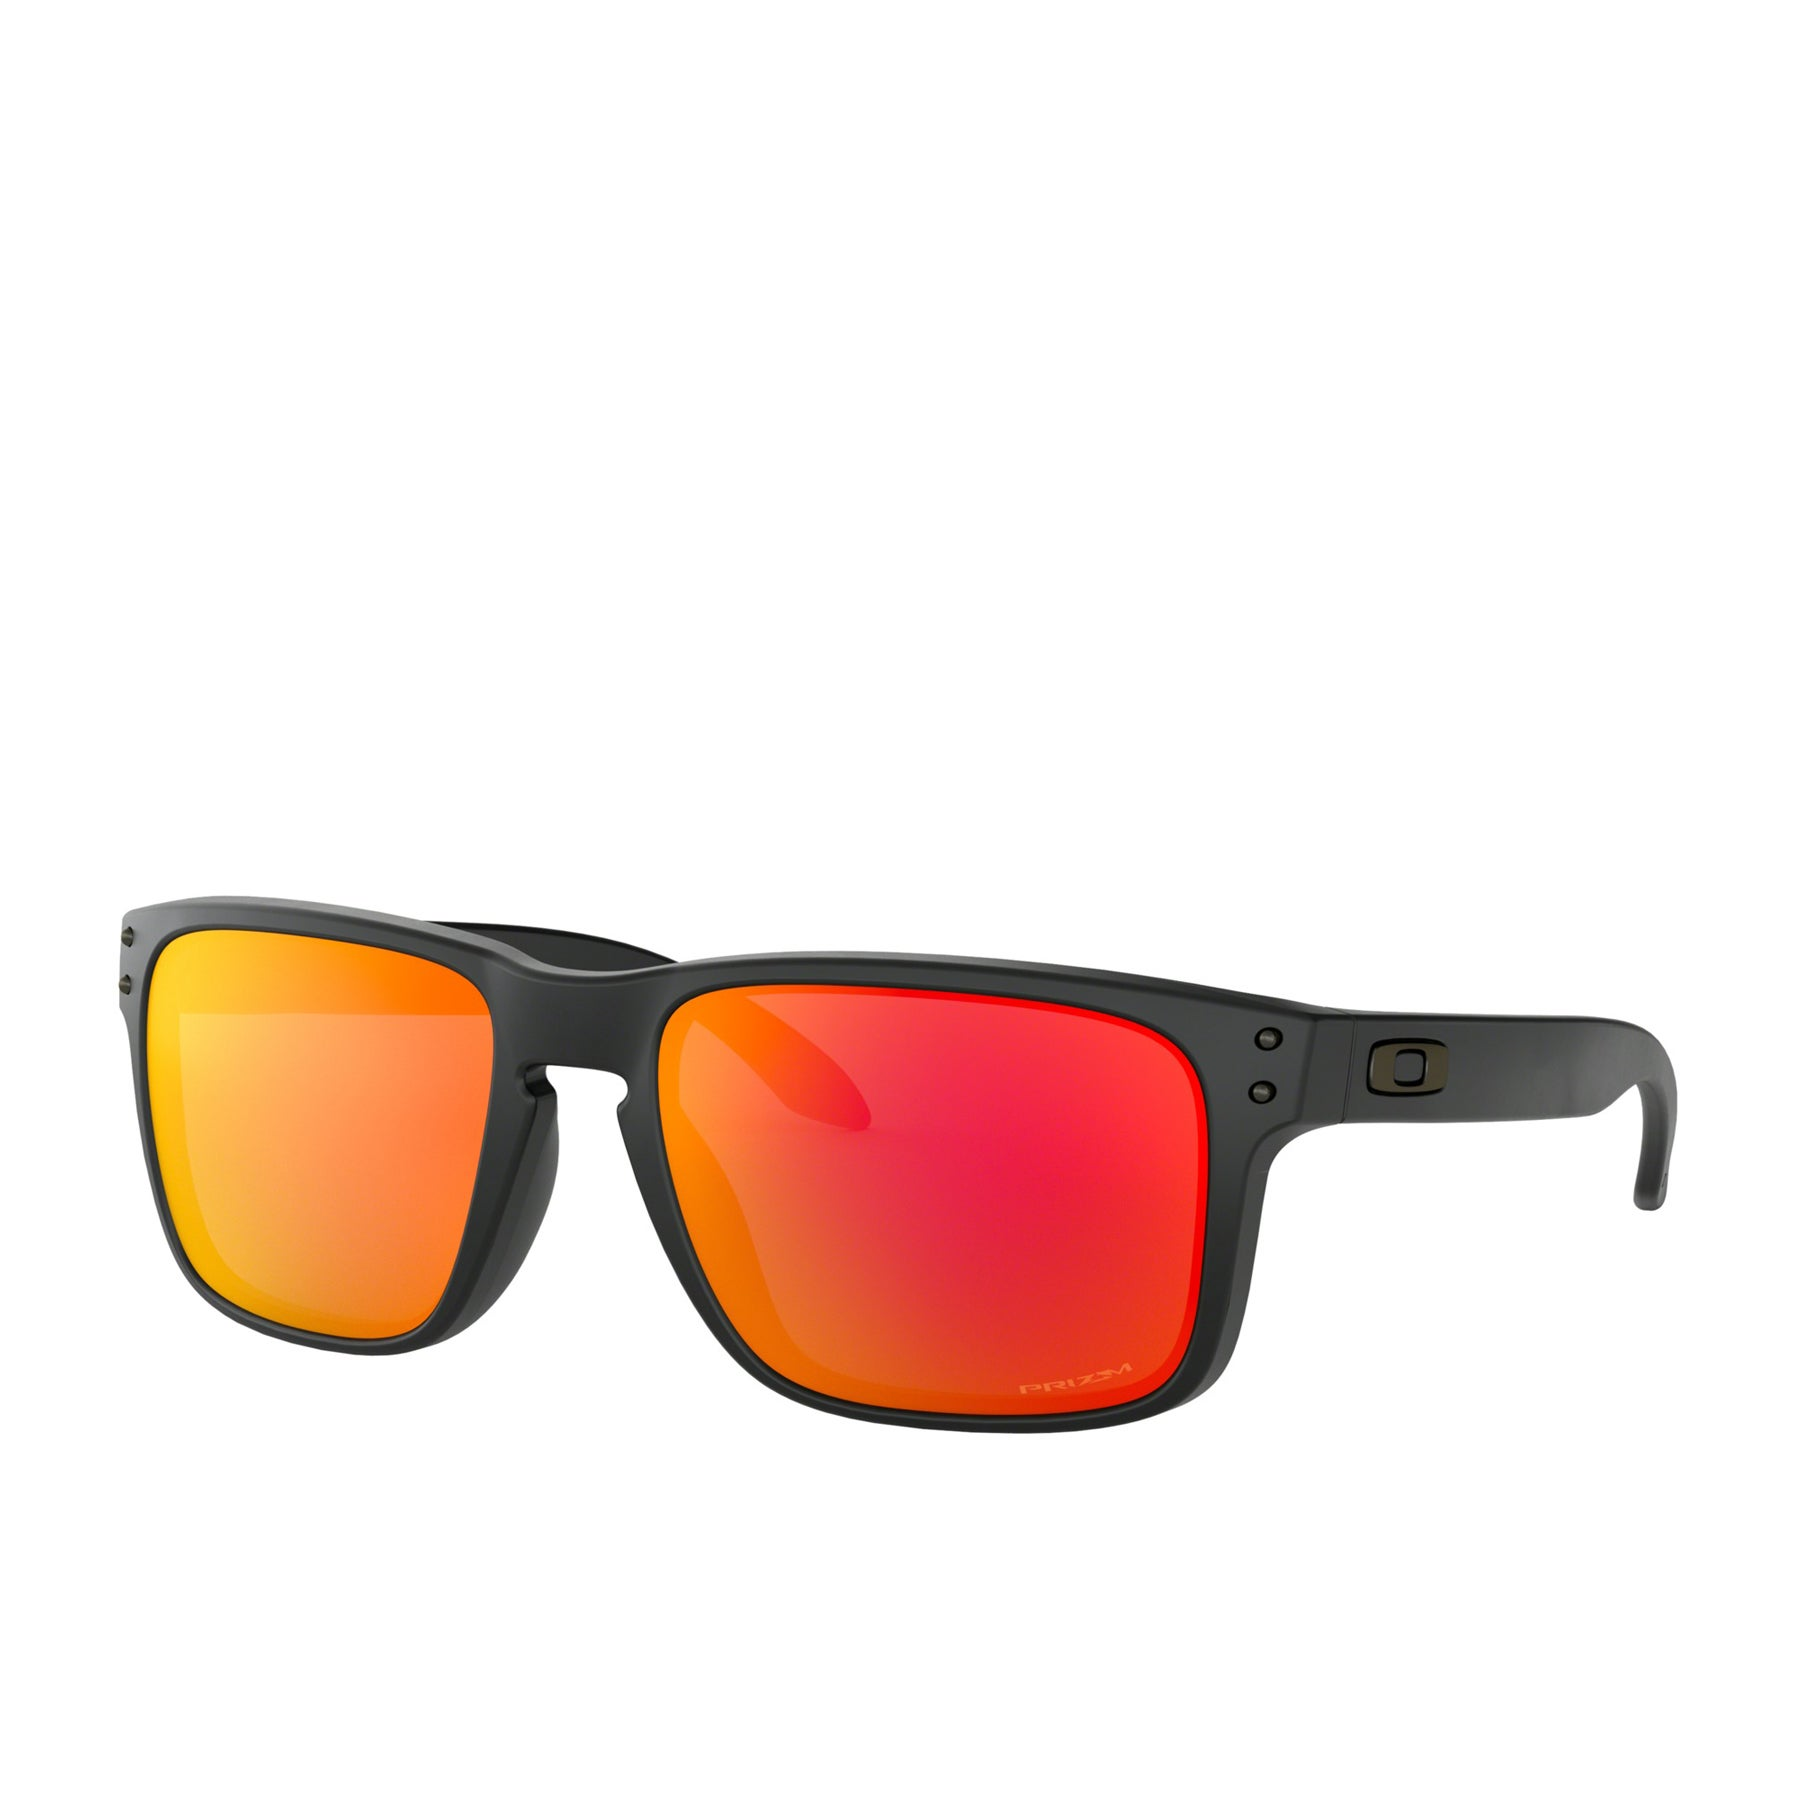 66f5620488 Oakley Holbrook Sunglasses - Free Delivery options on All Orders ...